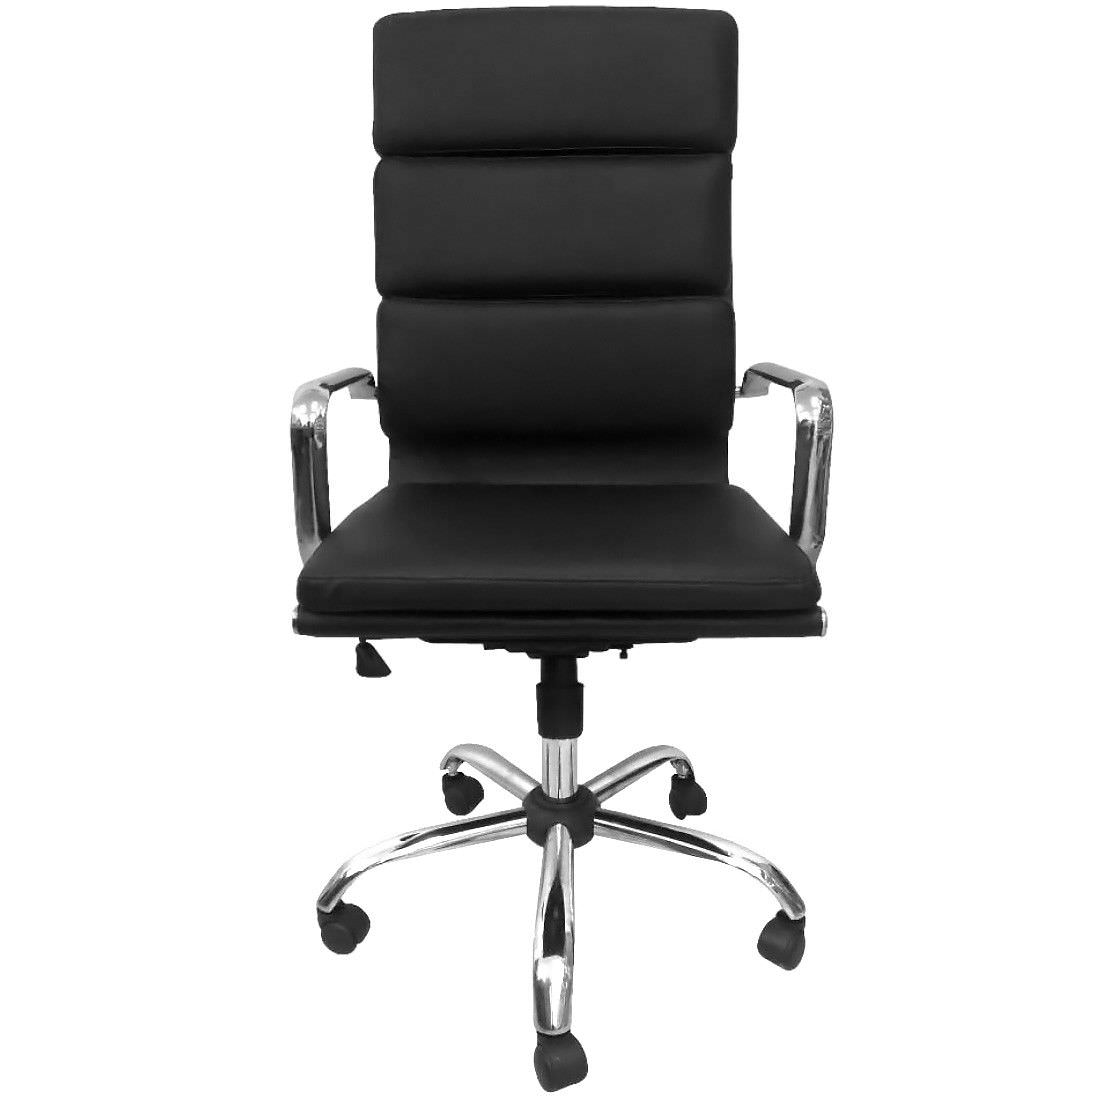 Replica Eames Italian Leather Soft Pad Boardroom Chair, High Back, Black / Silver